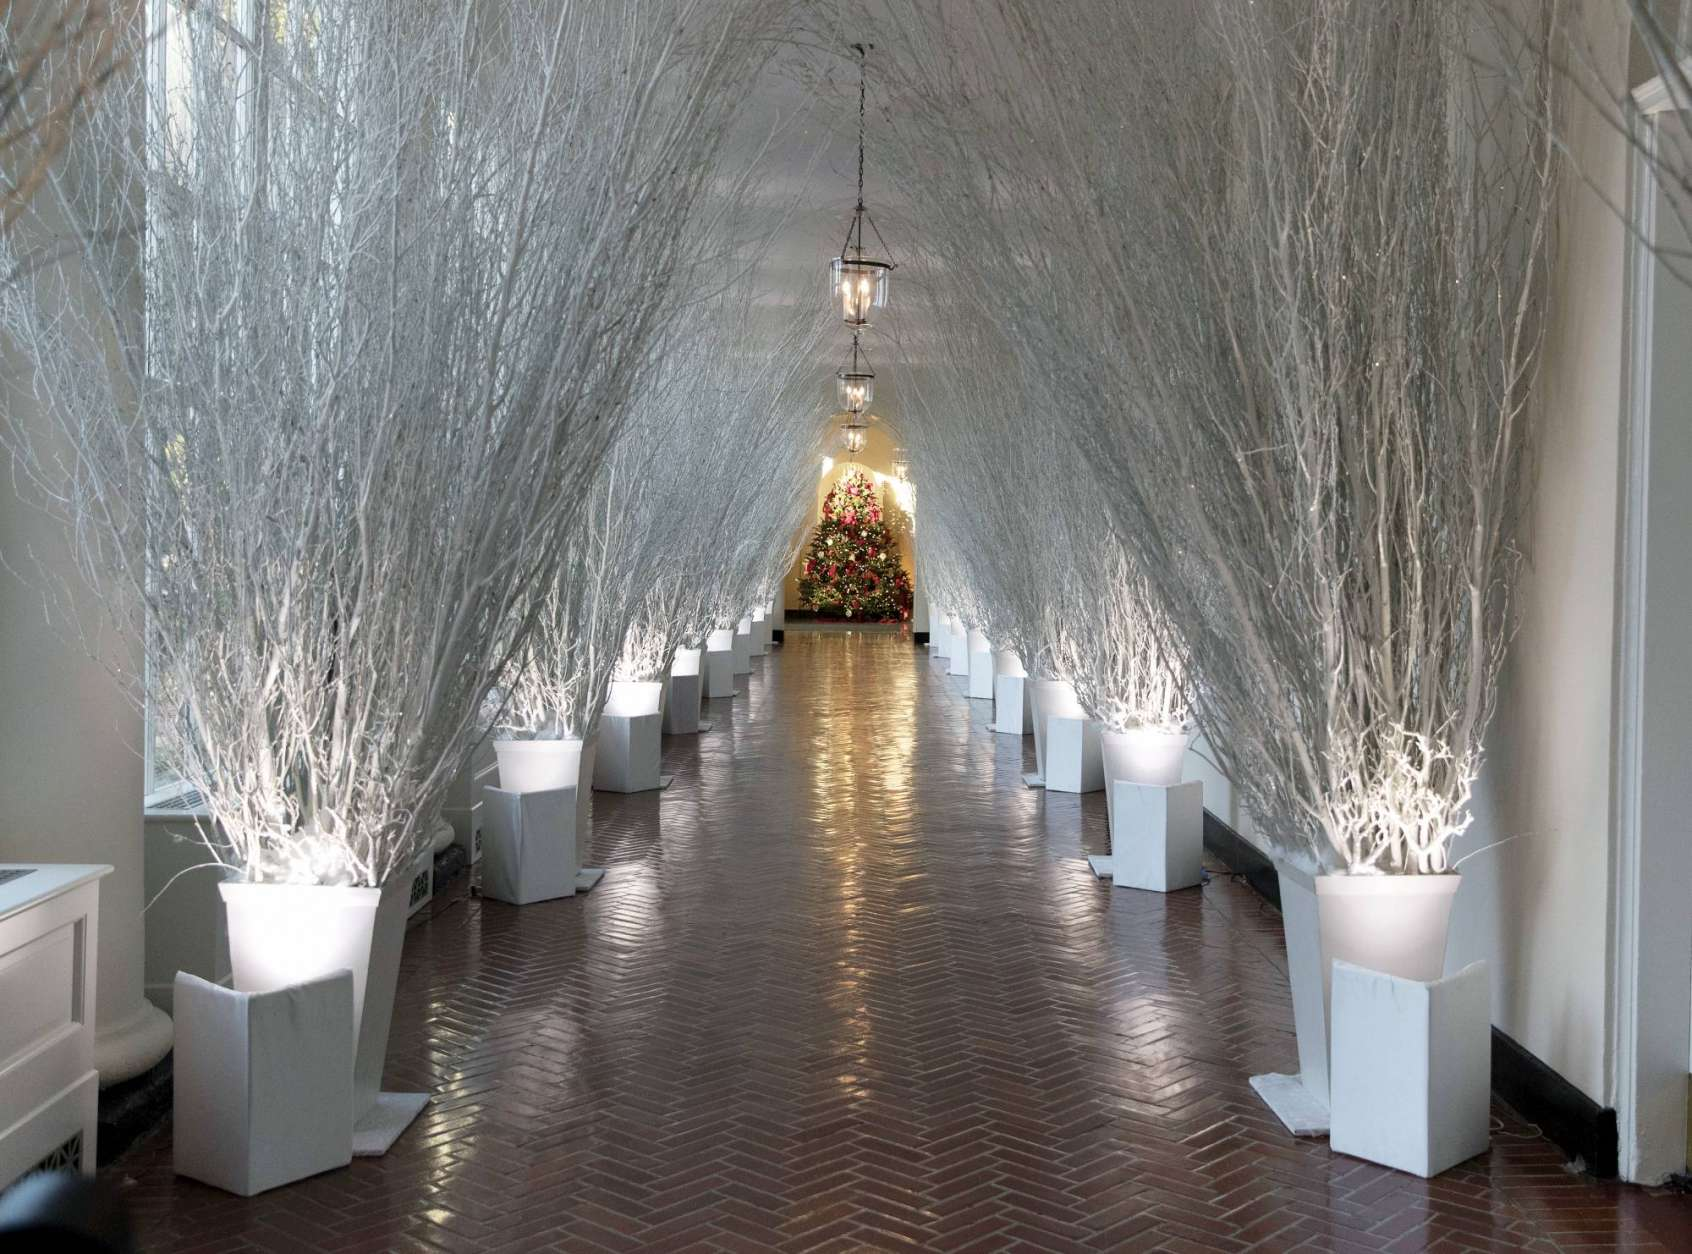 The East Colonnade is decorated with white branches that lead to a Christmas tree in the the East Garden Room during a media preview of the 2017 holiday decorations at the White House in Washington, Monday, Nov. 27, 2017. (AP Photo/Carolyn Kaster)